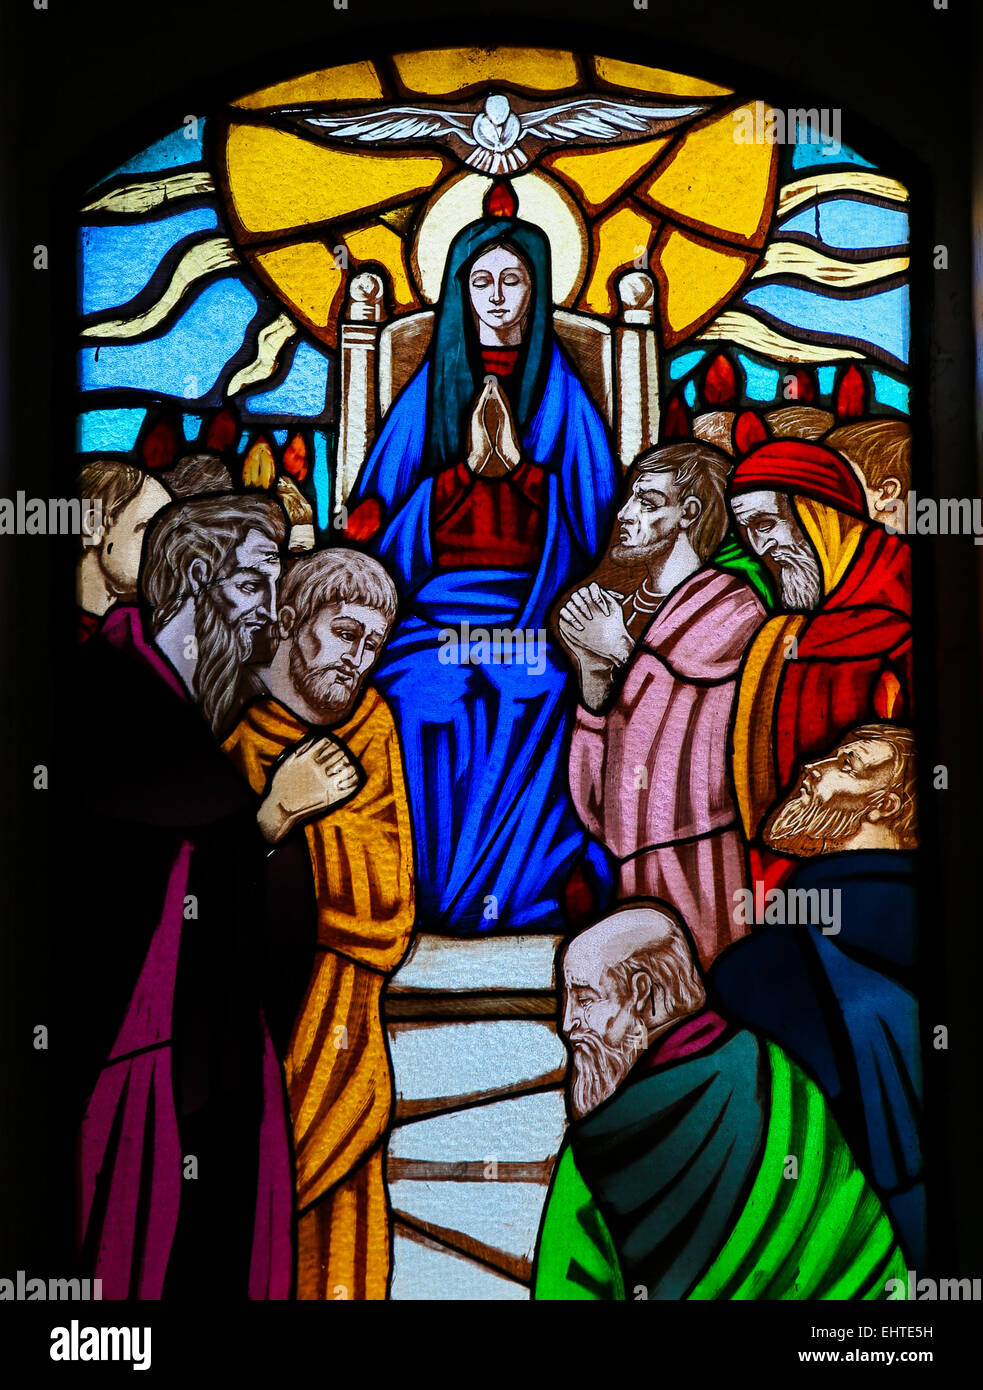 Stained glass window depicting the Descent of the Holy Spirit at Pentecost in the Church of Ostuni, Apulia, Italia - Stock Image